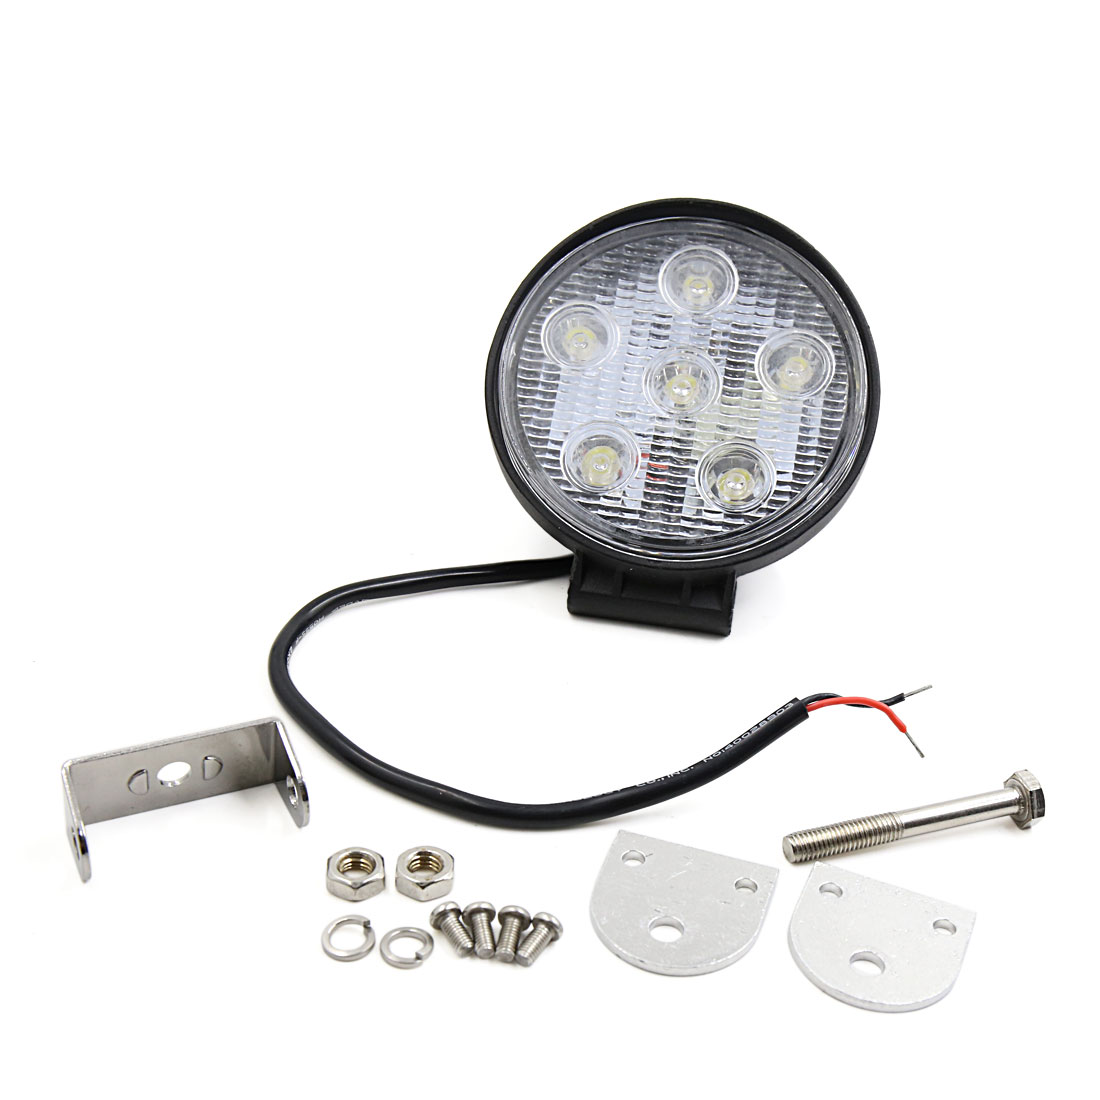 Black Metal Round Case 18W 6 LED Work Light Spot Beam Fog Driving Lamp for Offroad ATV SUV